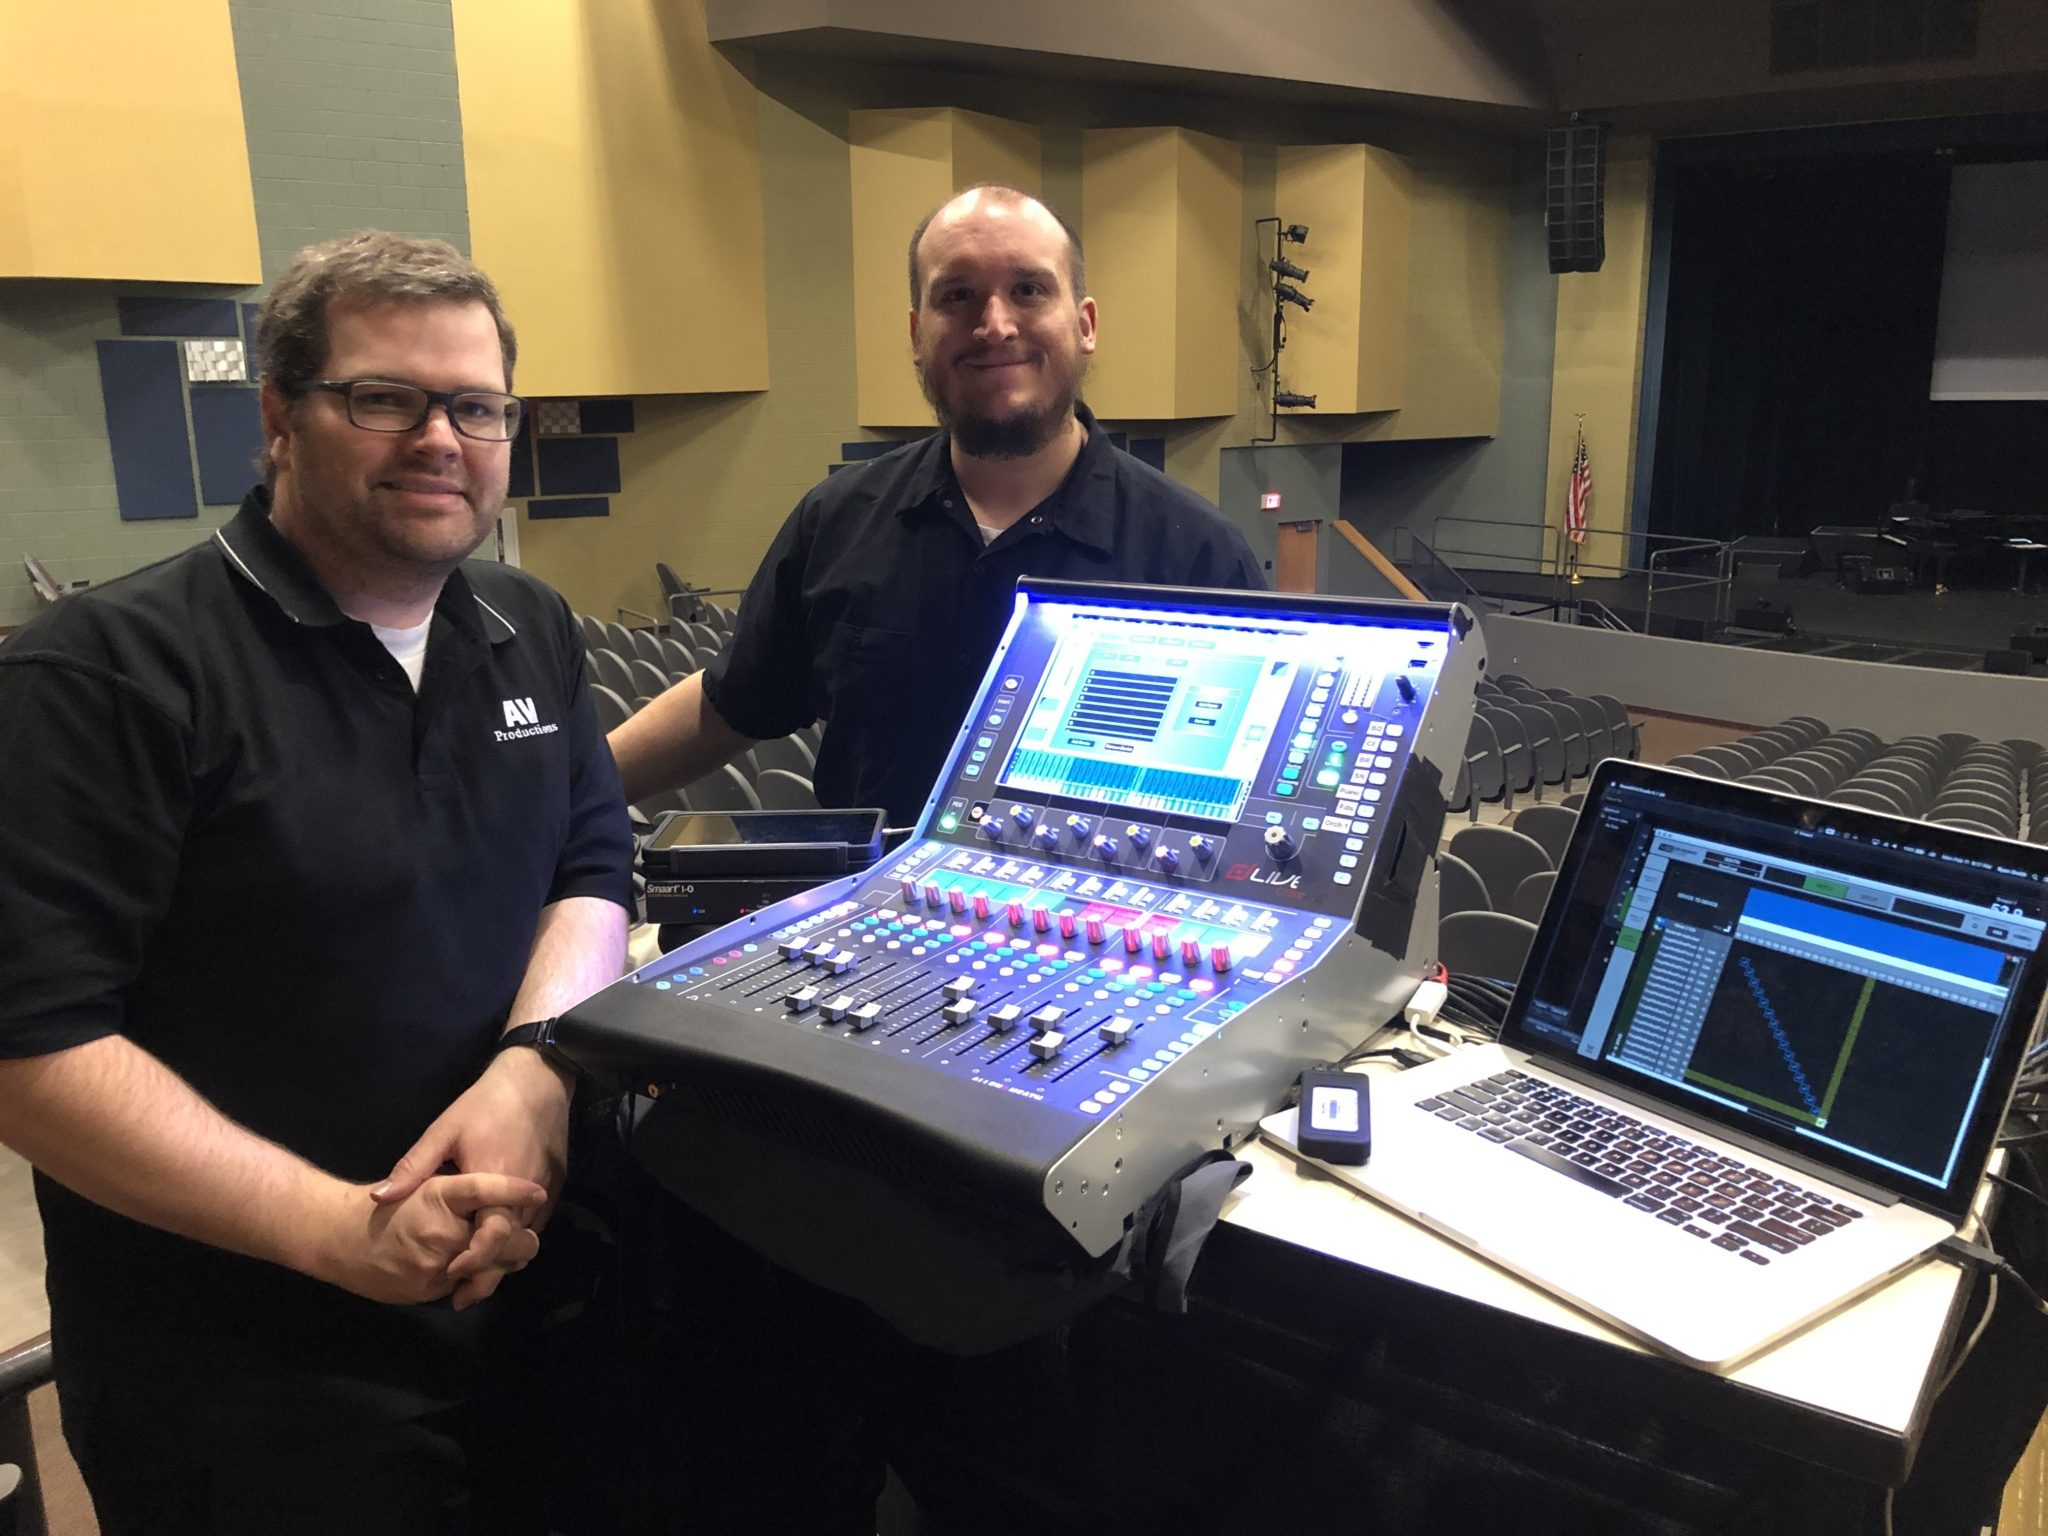 GENTRI – THE GENTLEMEN TRIO TOURS LIGHT WITH ALLEN & HEATH